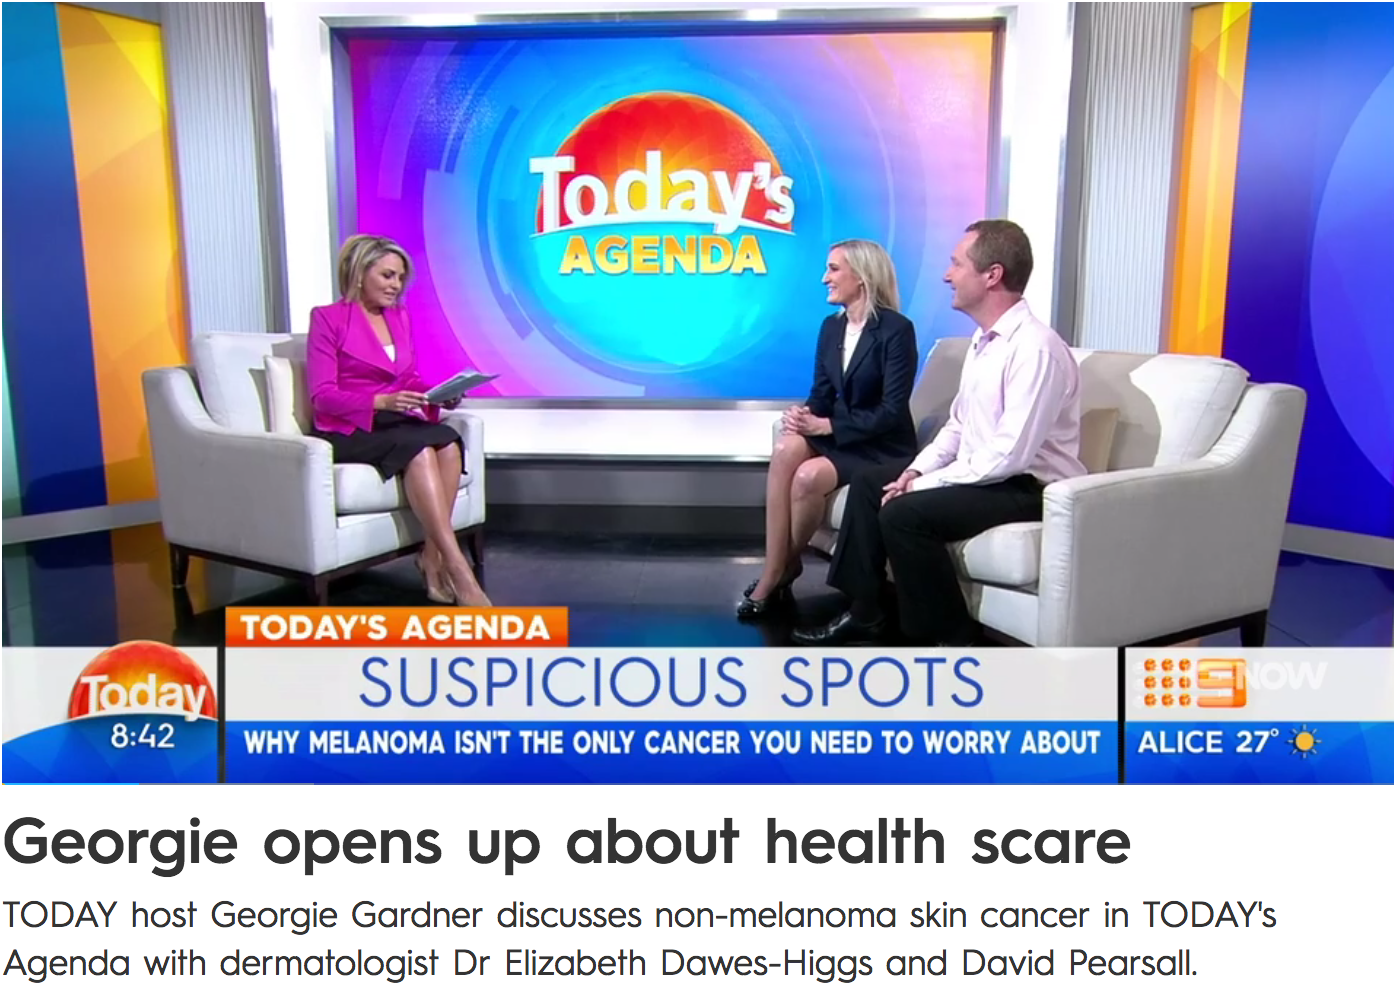 Dr Liz Dawes-Higgs speaking with Georgie Gardener about non-melanoma skin cancer.